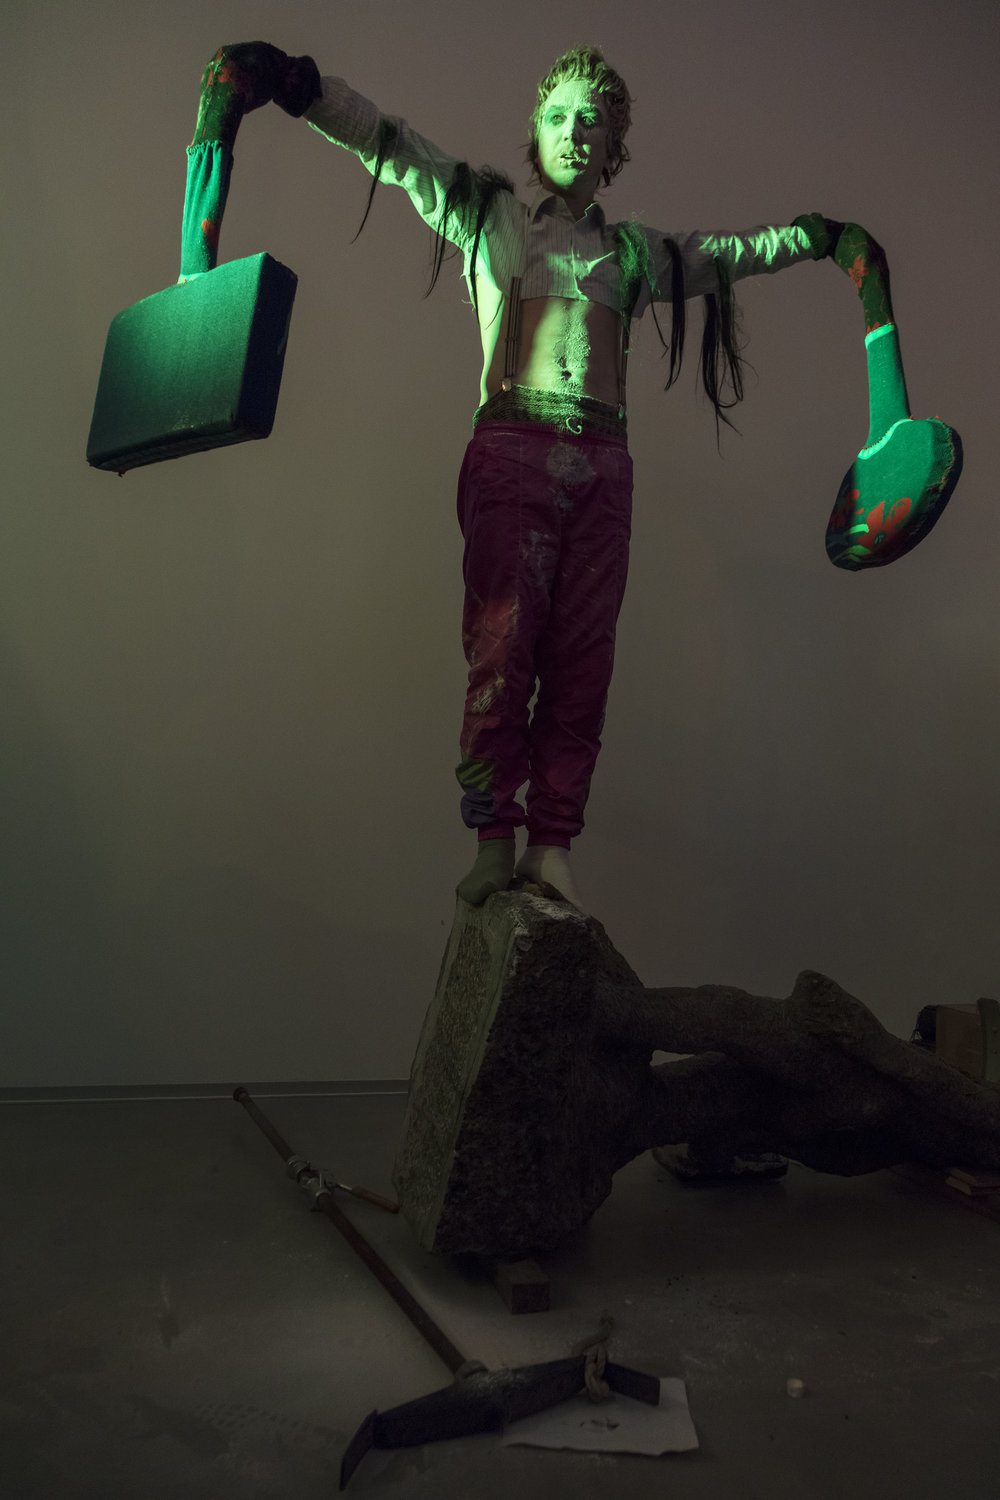 Lars Eidinger performing at the opening of John Bock's exhibition at Berlinische Galerie, Berlin, 2017